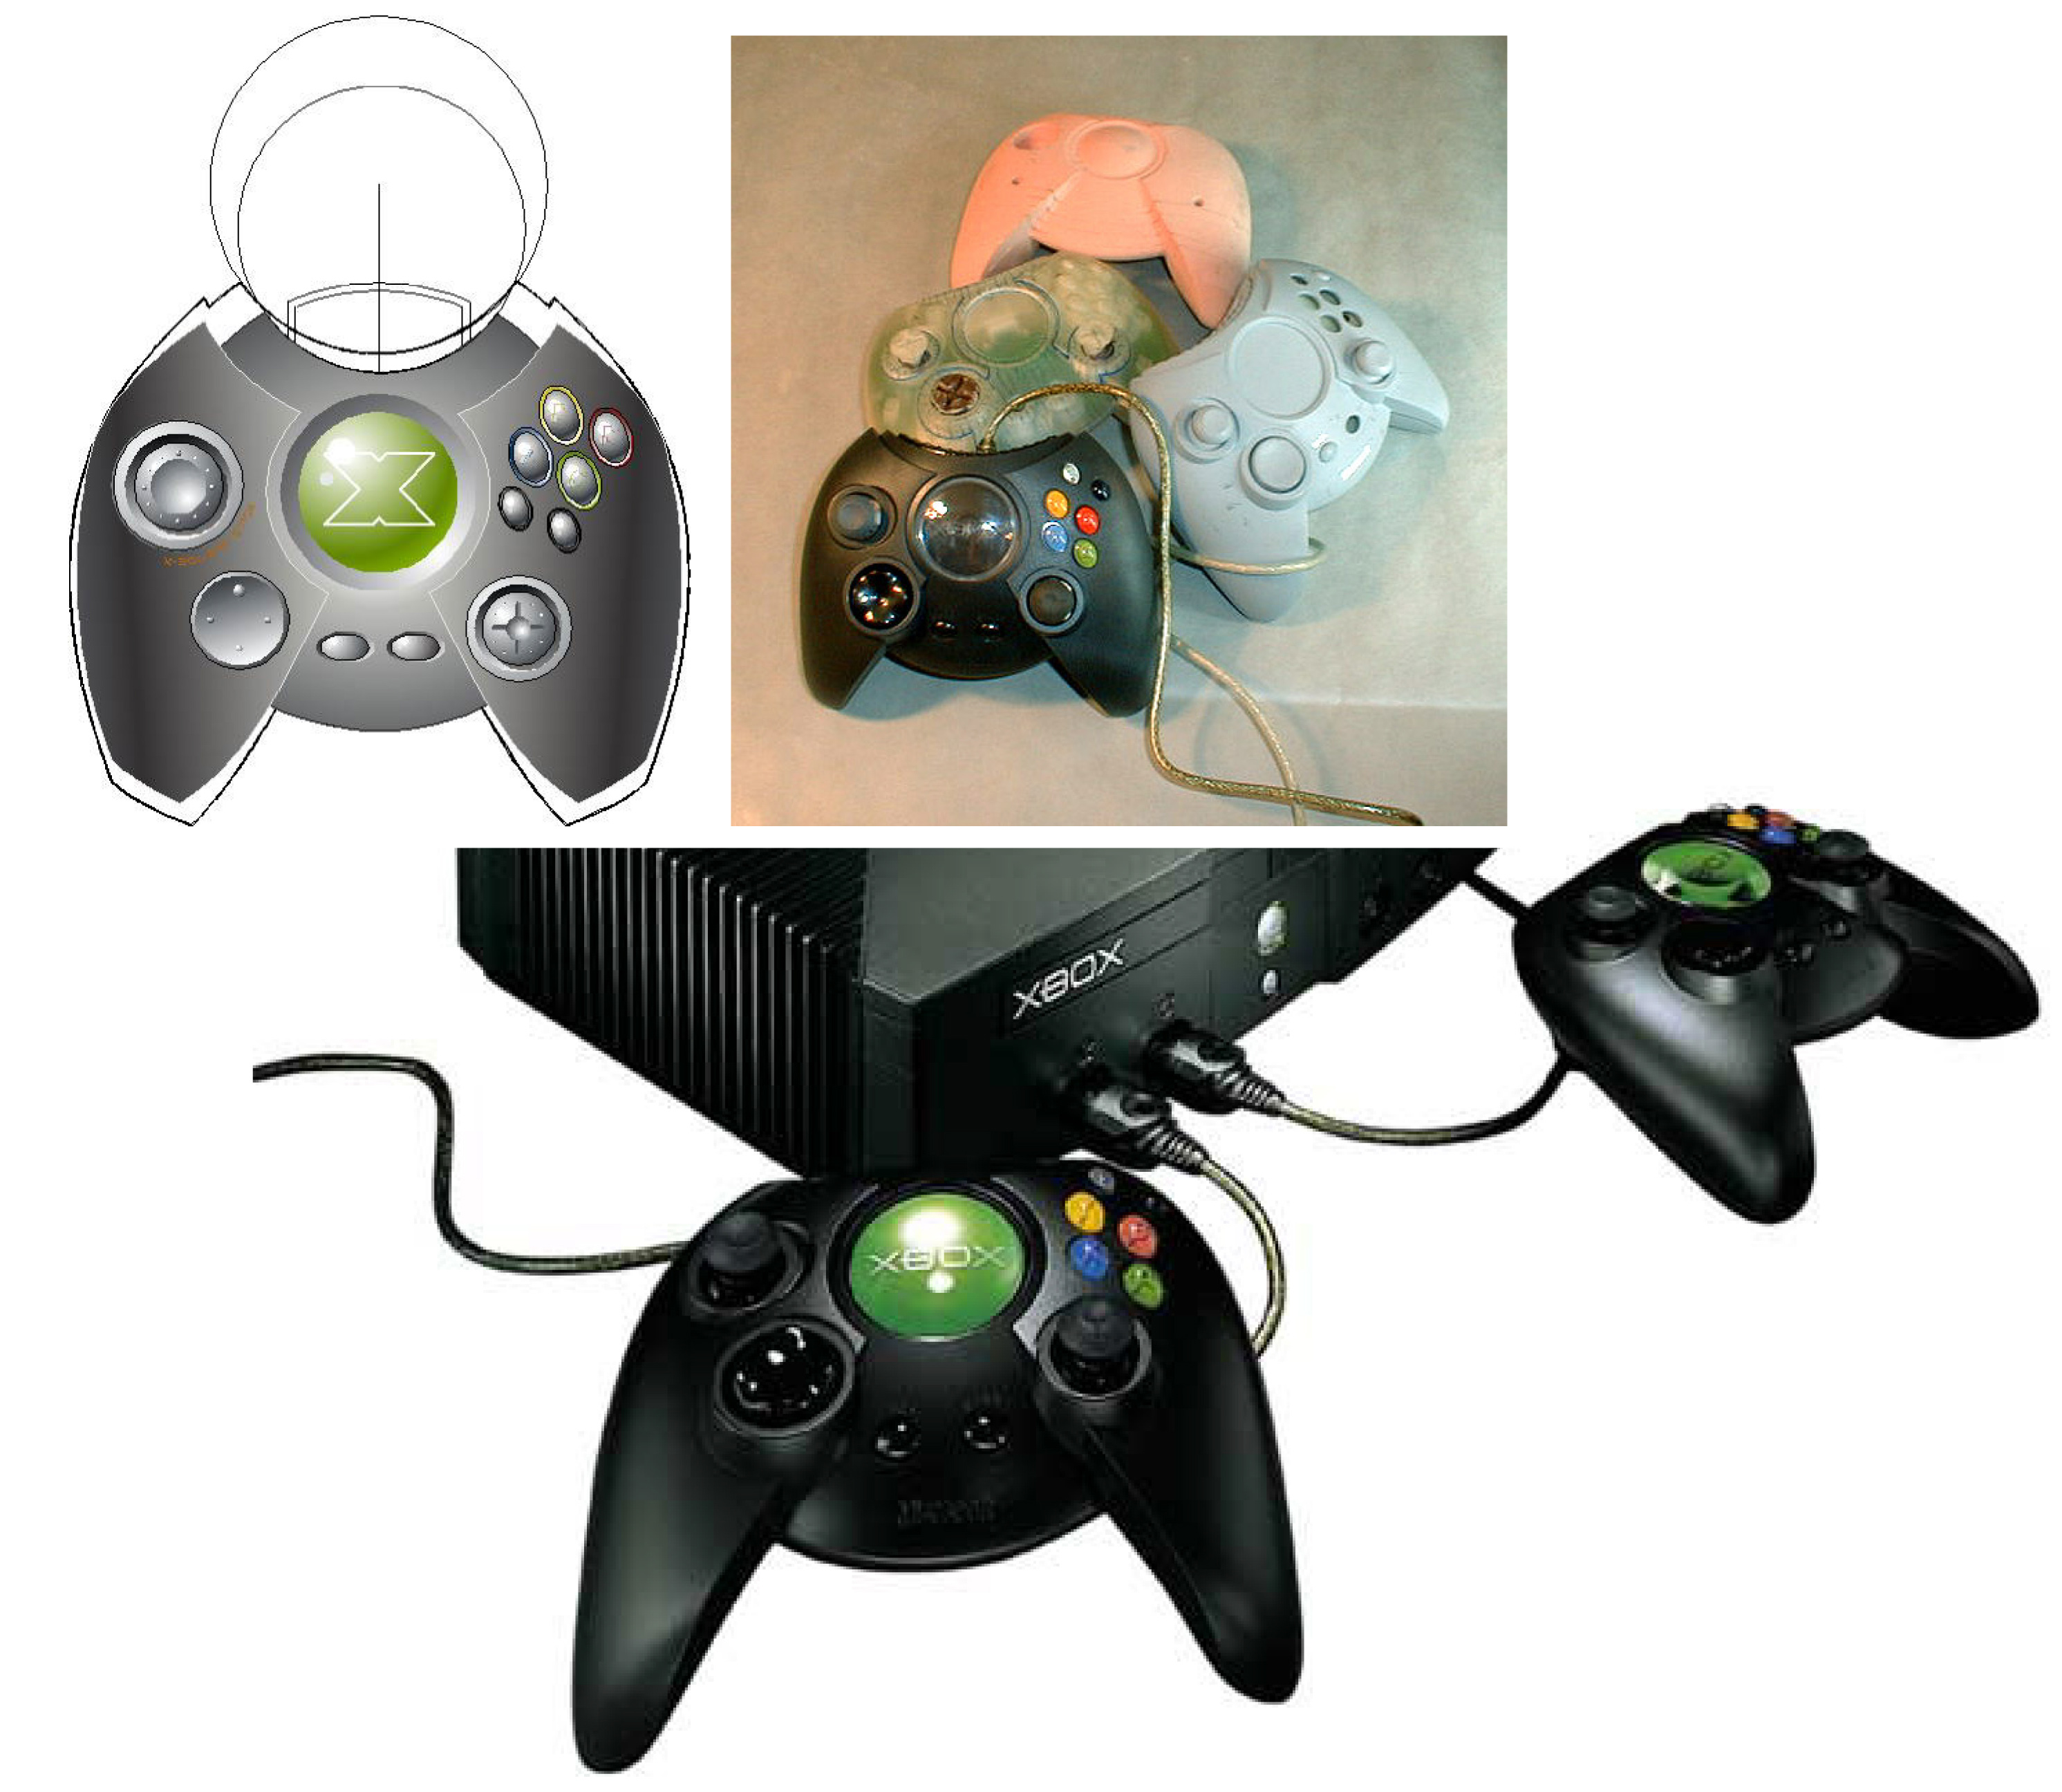 XBOX Controller Product Design